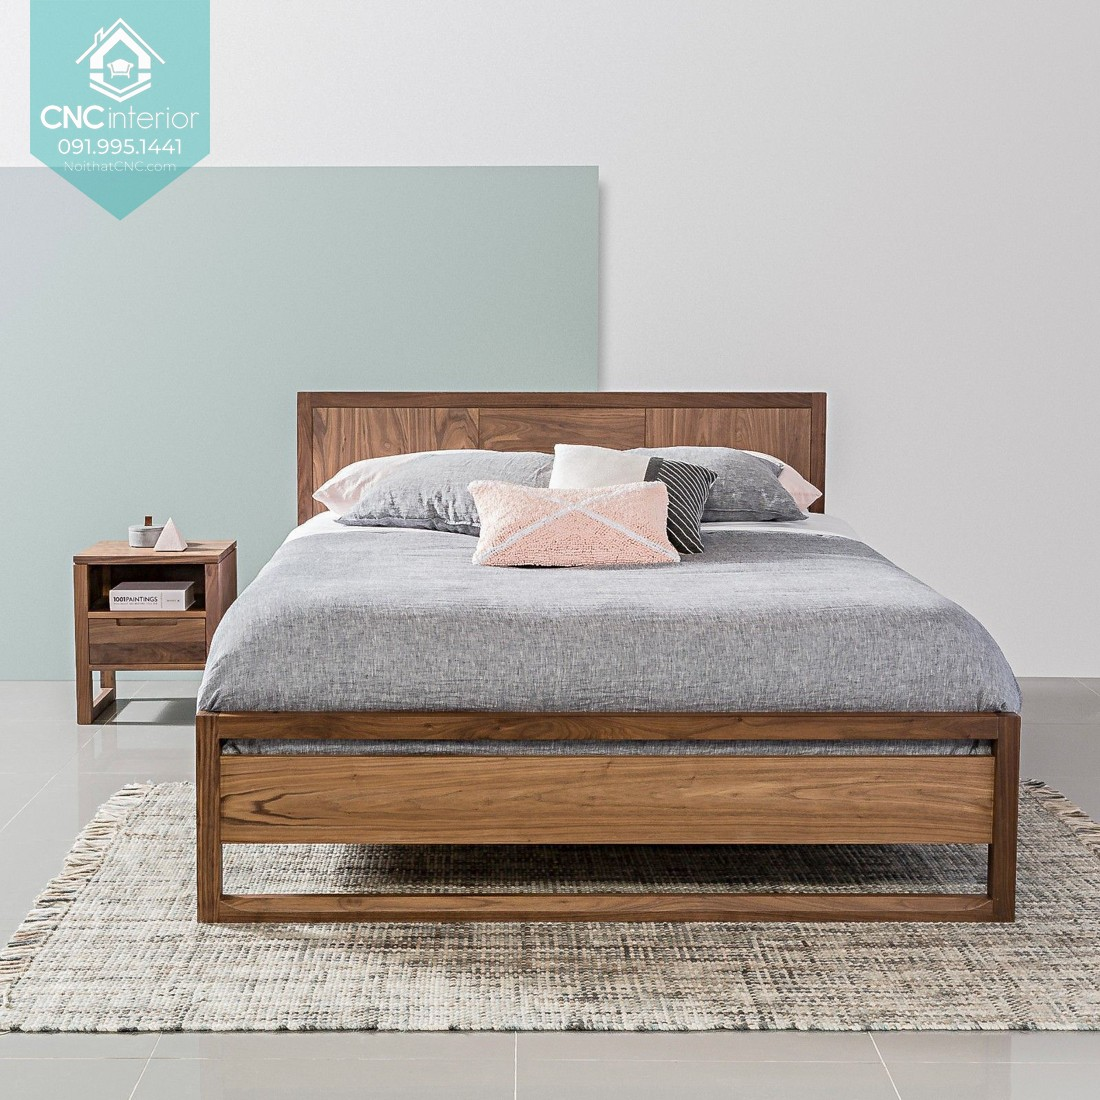 KEY THINGS TO OVERLOOK BEFORE BUYING BEDS MADE IN VIETNAM 2